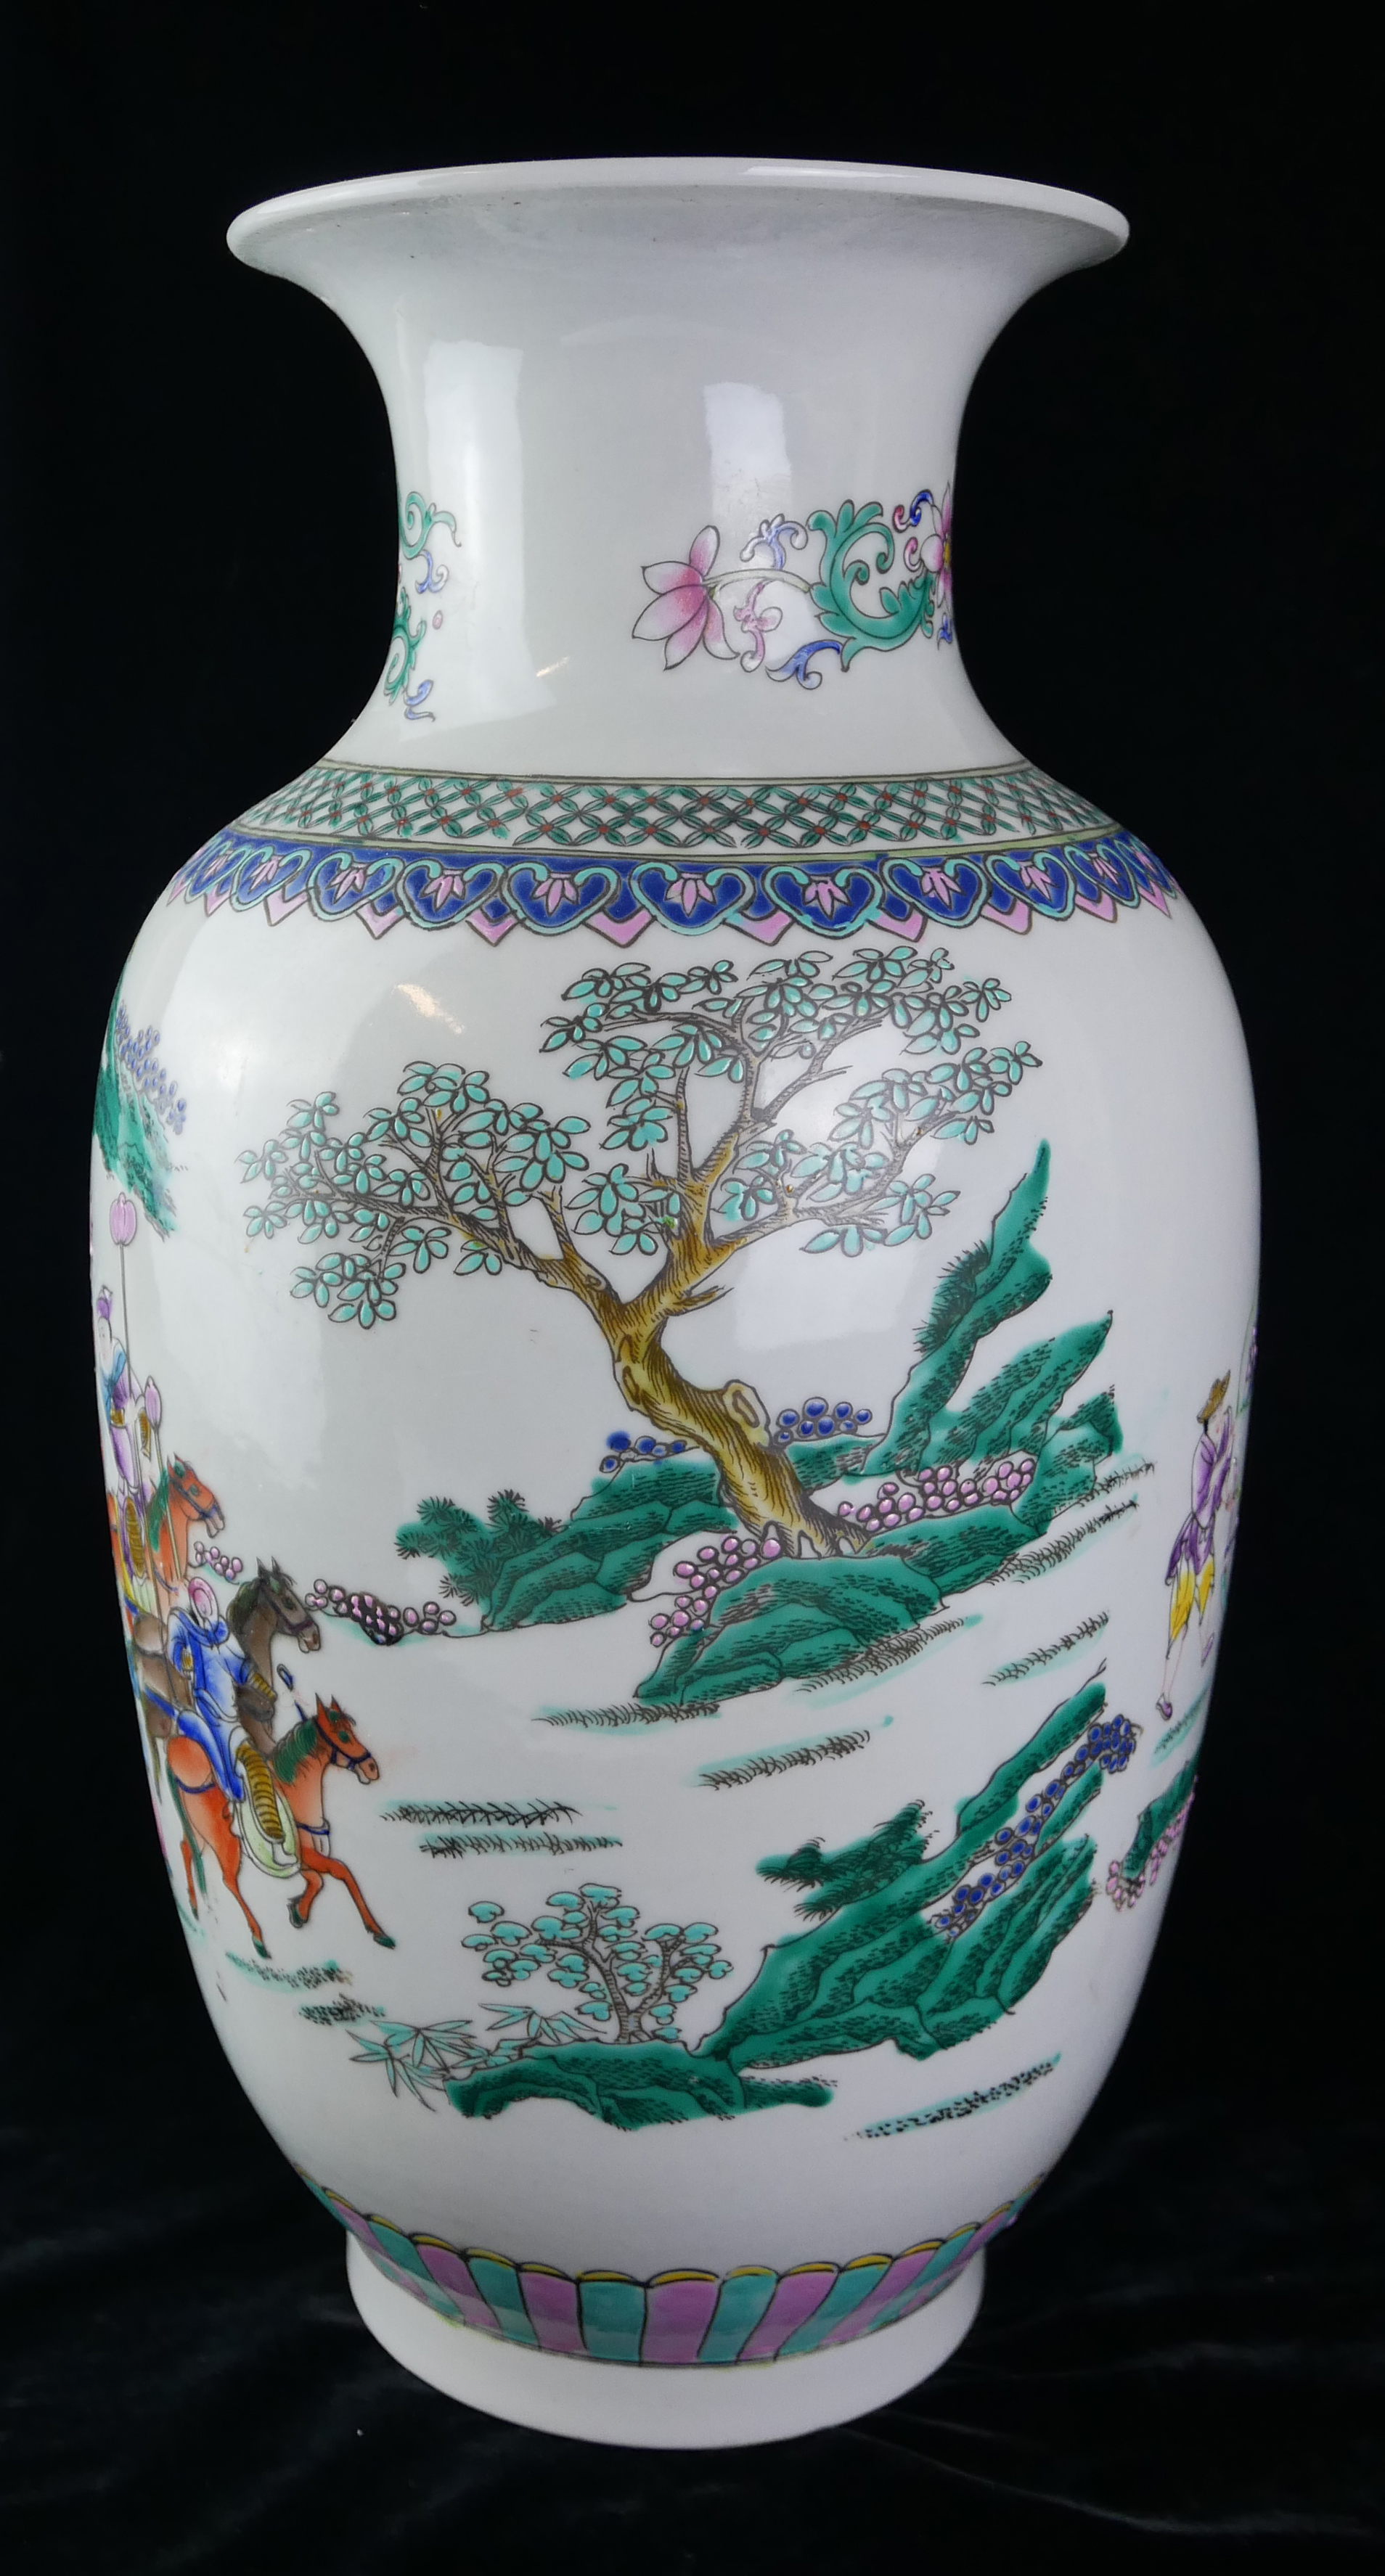 A CHINESE FAMILLE ROSE DESIGN PORCELAIN VASE Decorated with an Emperor with Royal carriage and - Image 3 of 4